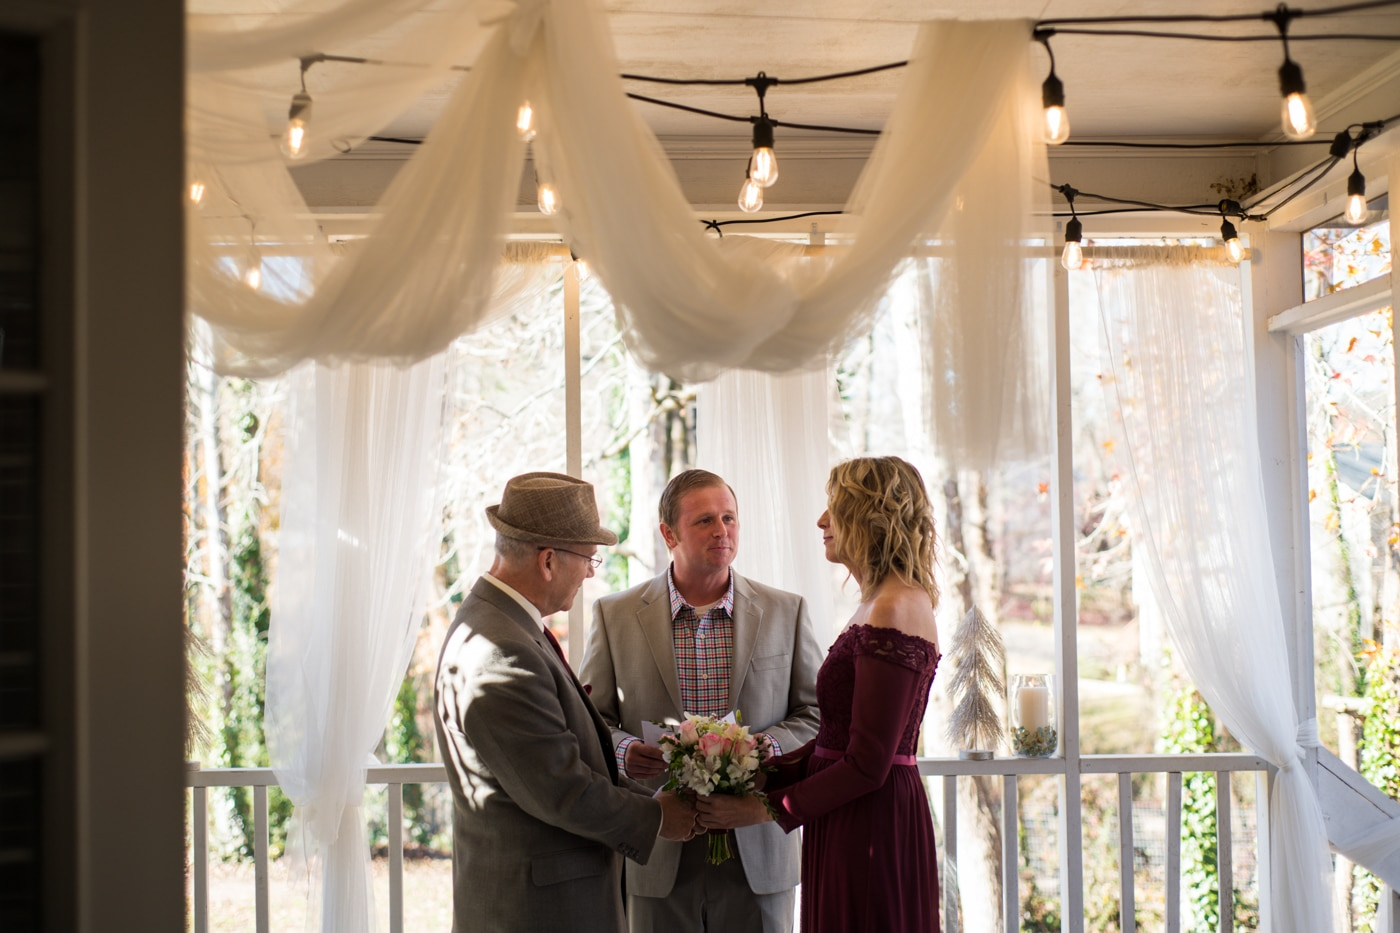 couple exchanges vows during ceremony at home